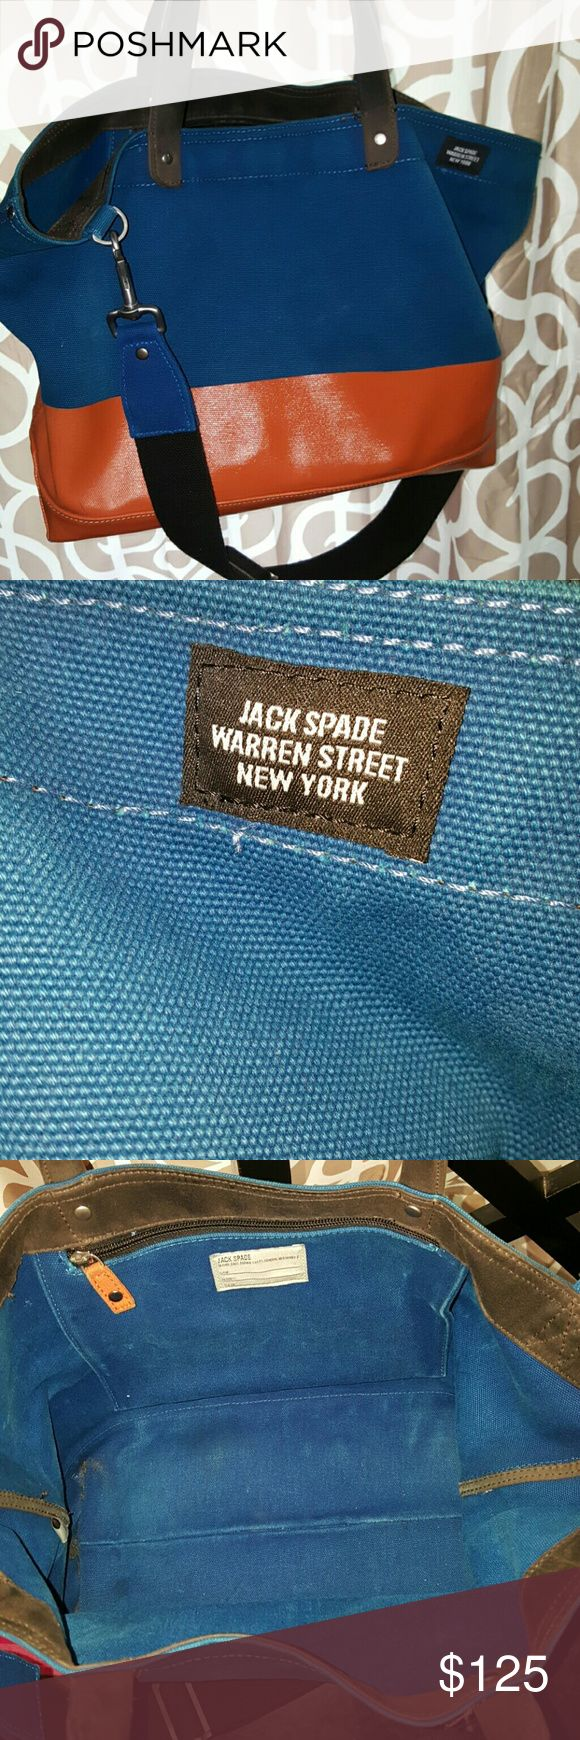 Jack spade bag Slight wear on bottom....picture shown. Overall good condition Jack Spade Bags Messenger Bags